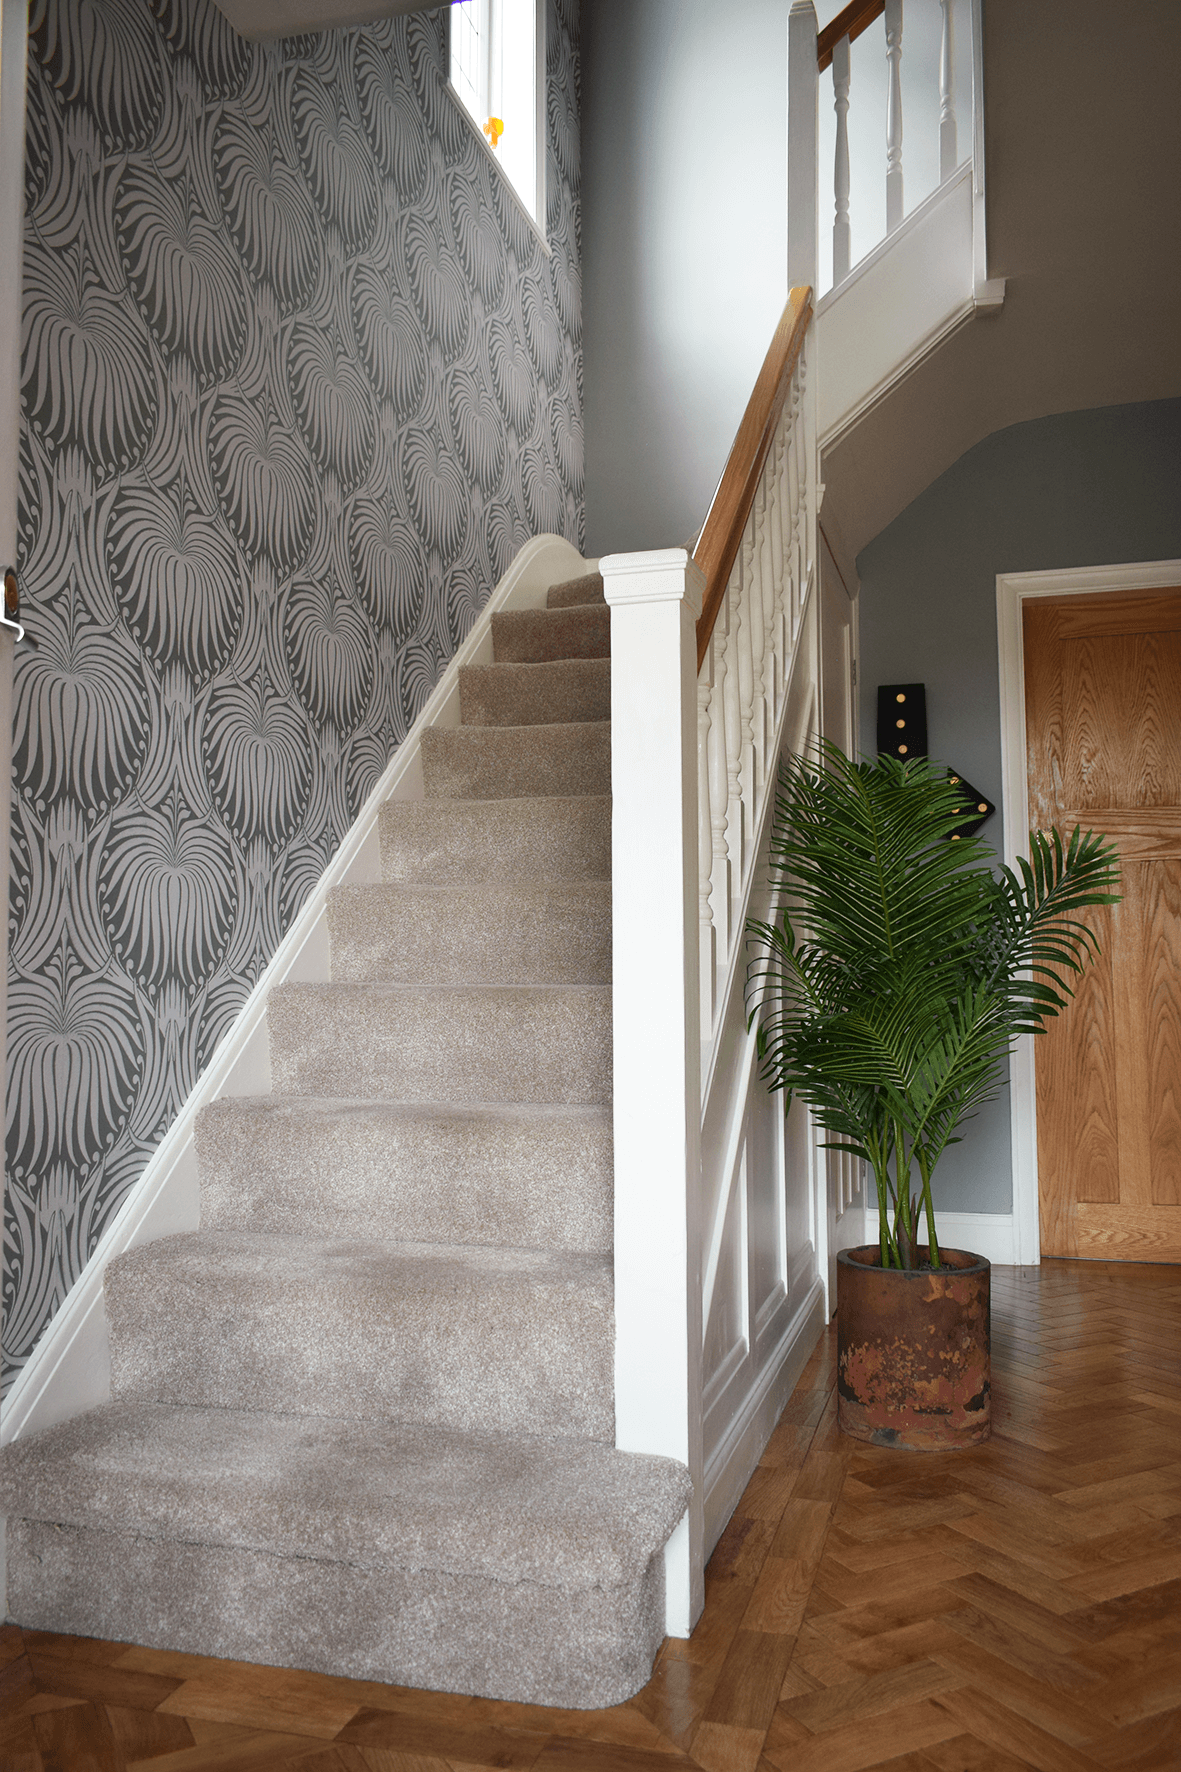 Hallway stairs stairway indoor plant wallpaper feature wallpaper parque flooring hallway renovation before and after projects interior